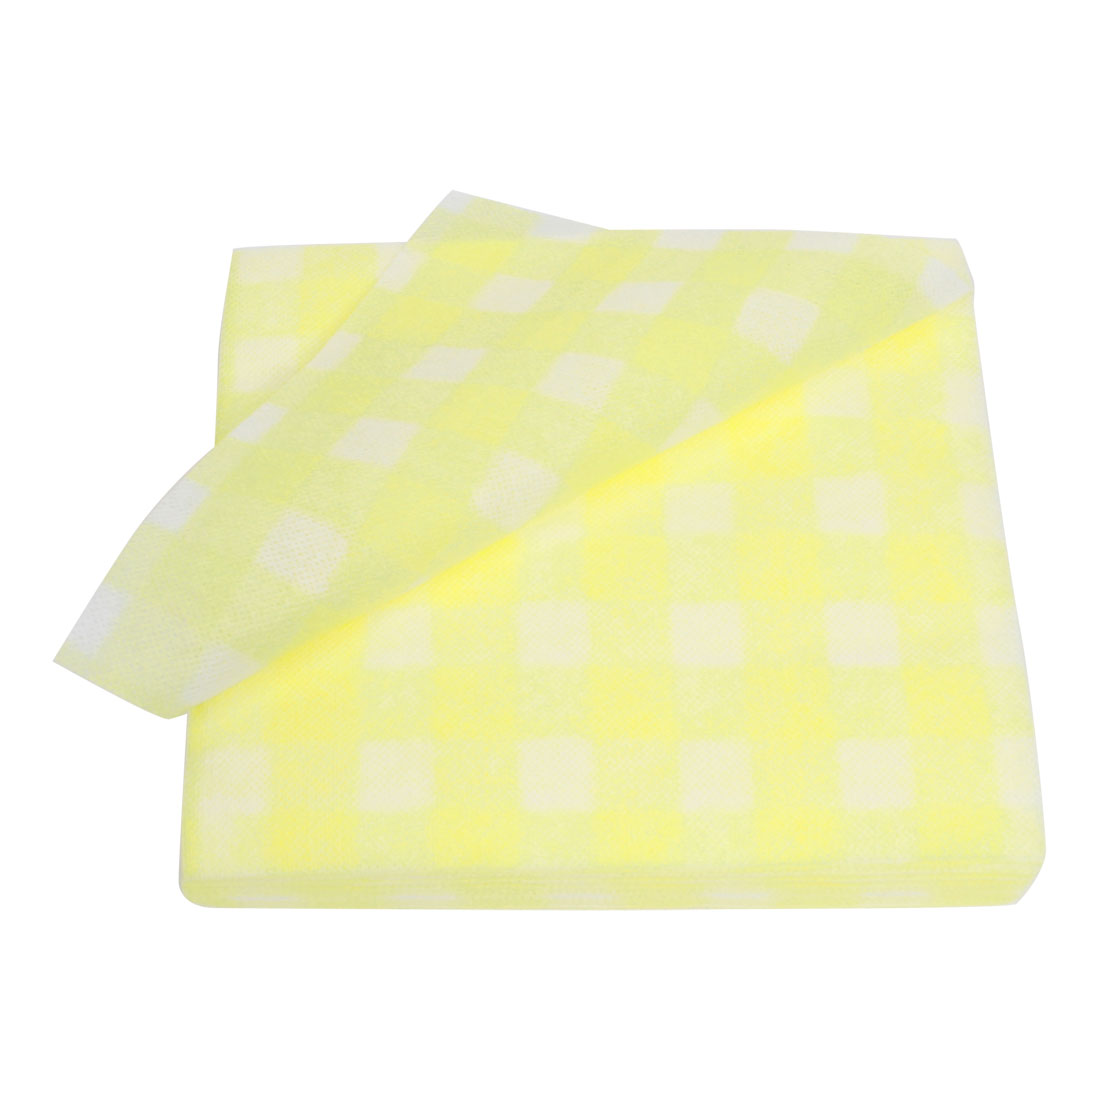 22cm x 21cm Yellow White Face Cleaning Disposable Towels 60 Pcs